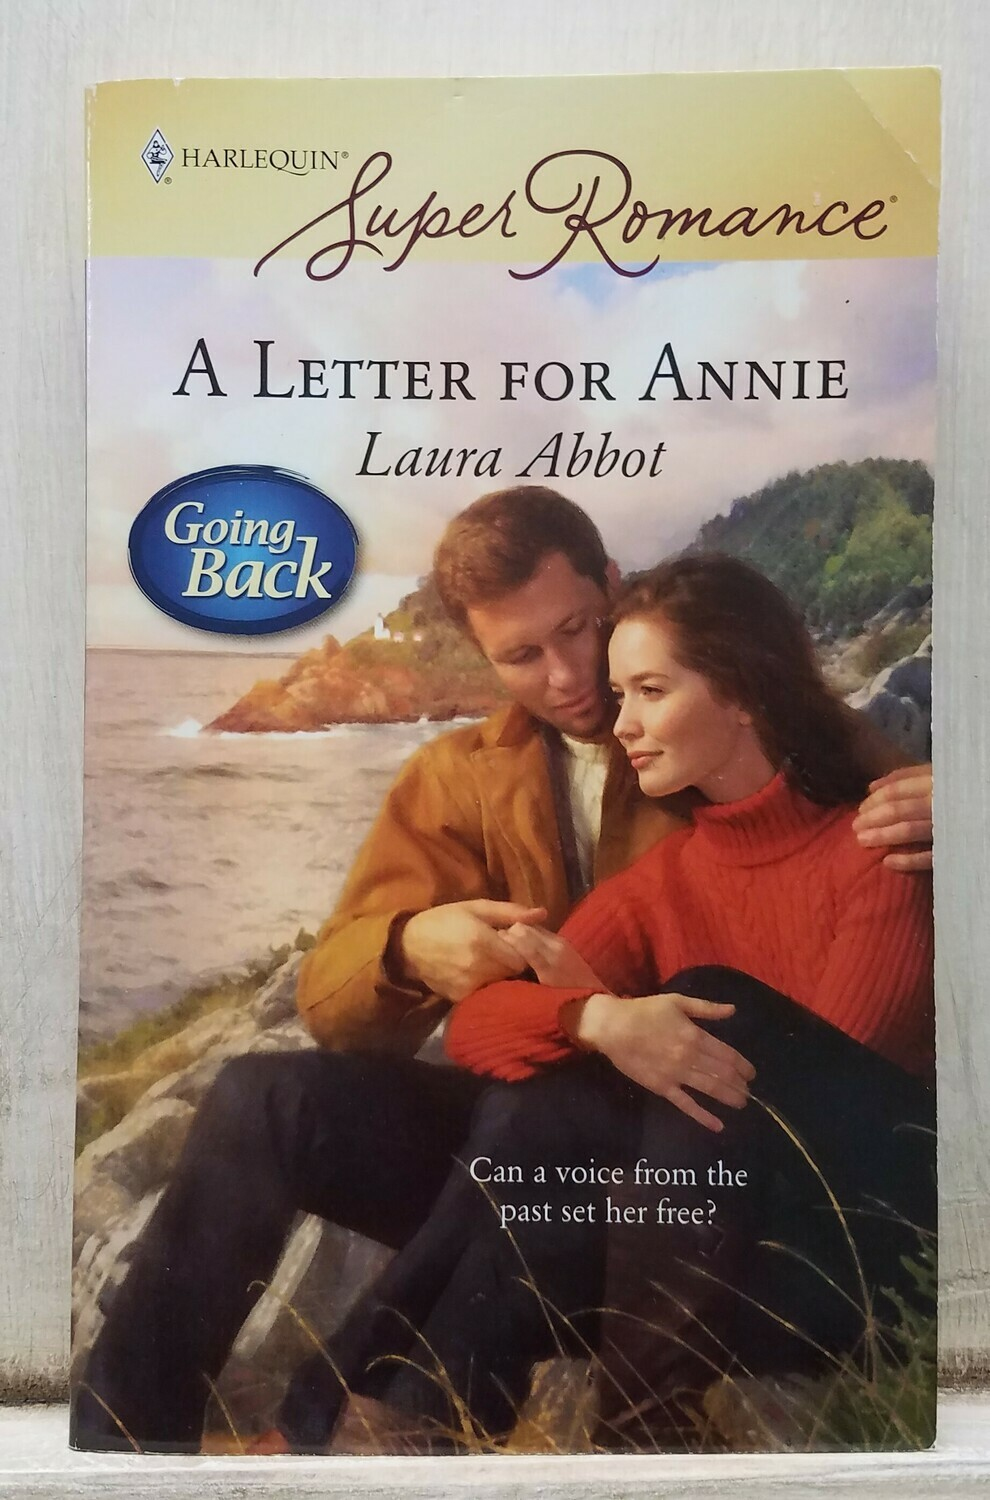 A Letter for Anne by Laura Abbot